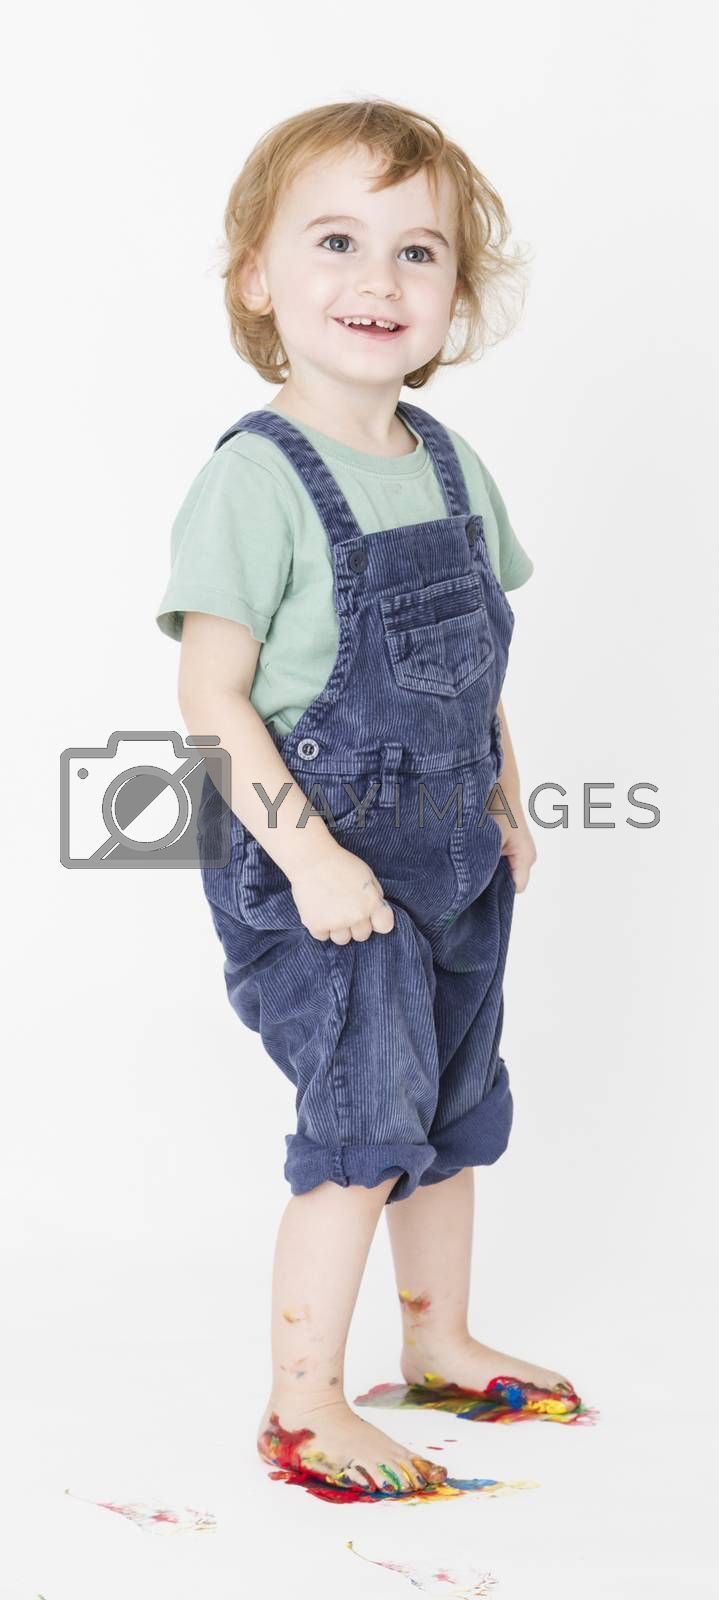 Royalty free image of child with painted feet holding trousers by gewoldi